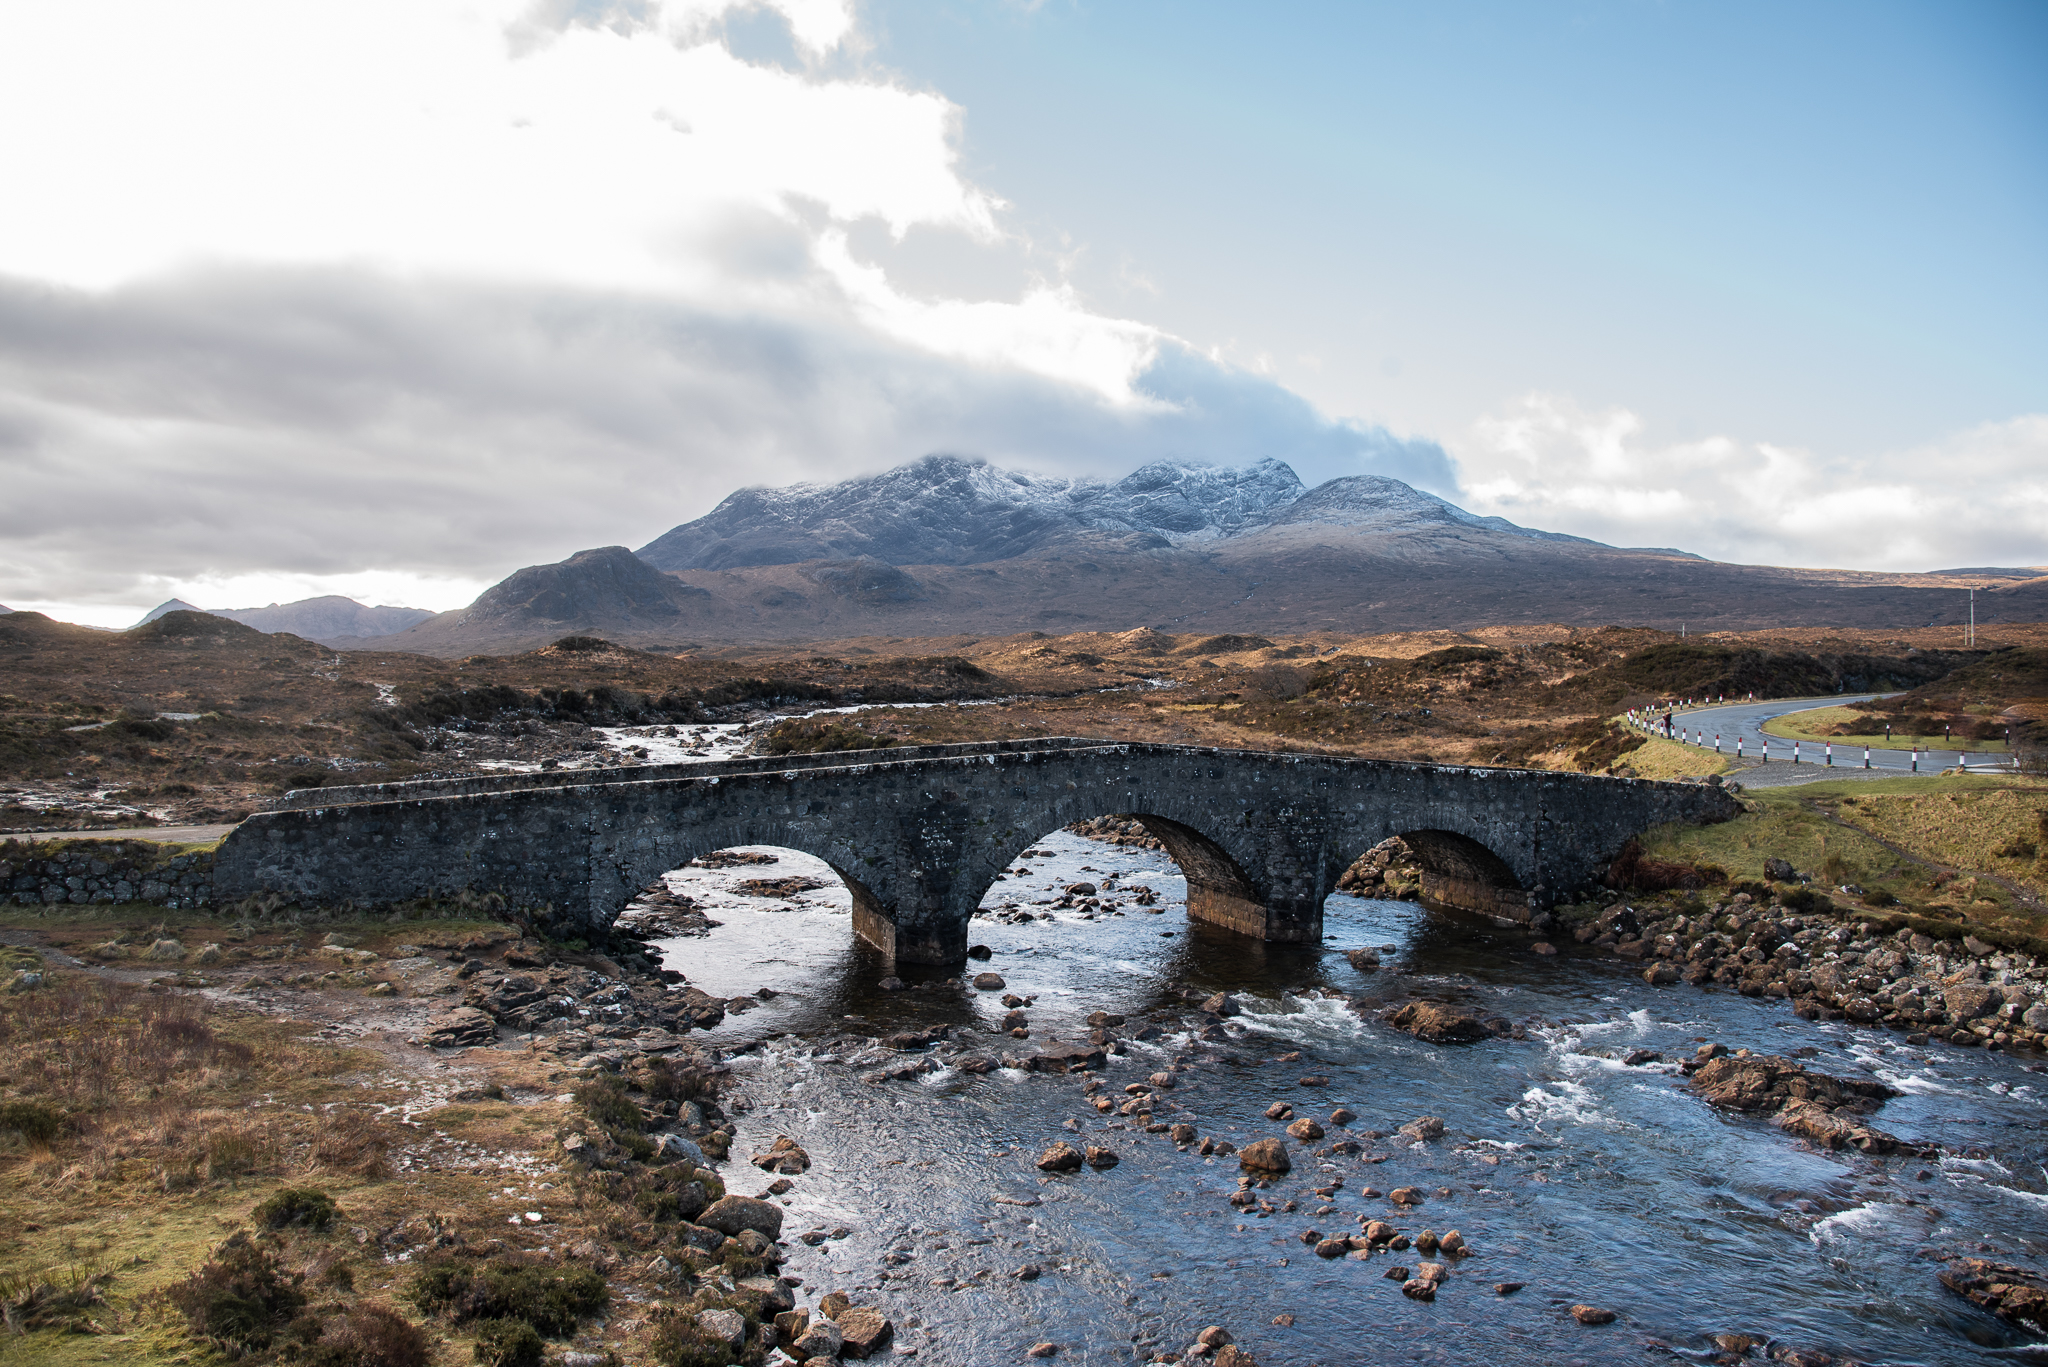 sligachan old bridge, isle of skye, scotland, roadtrip, mountains, river, bridge, instagrammable places in scotland